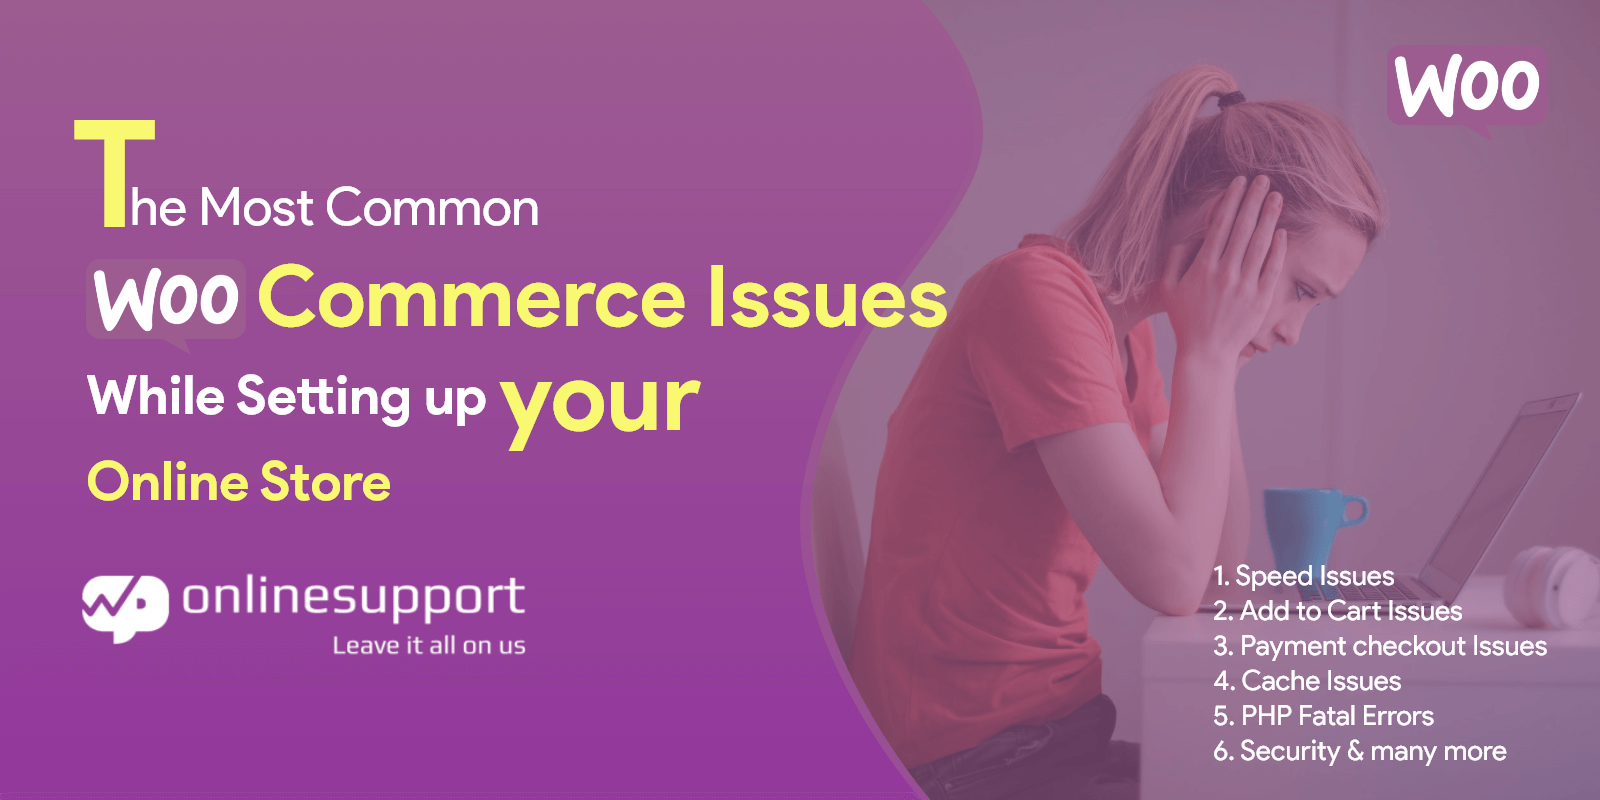 What are the Most Common WooCommerce Issues While Setting Up Your Online Store?